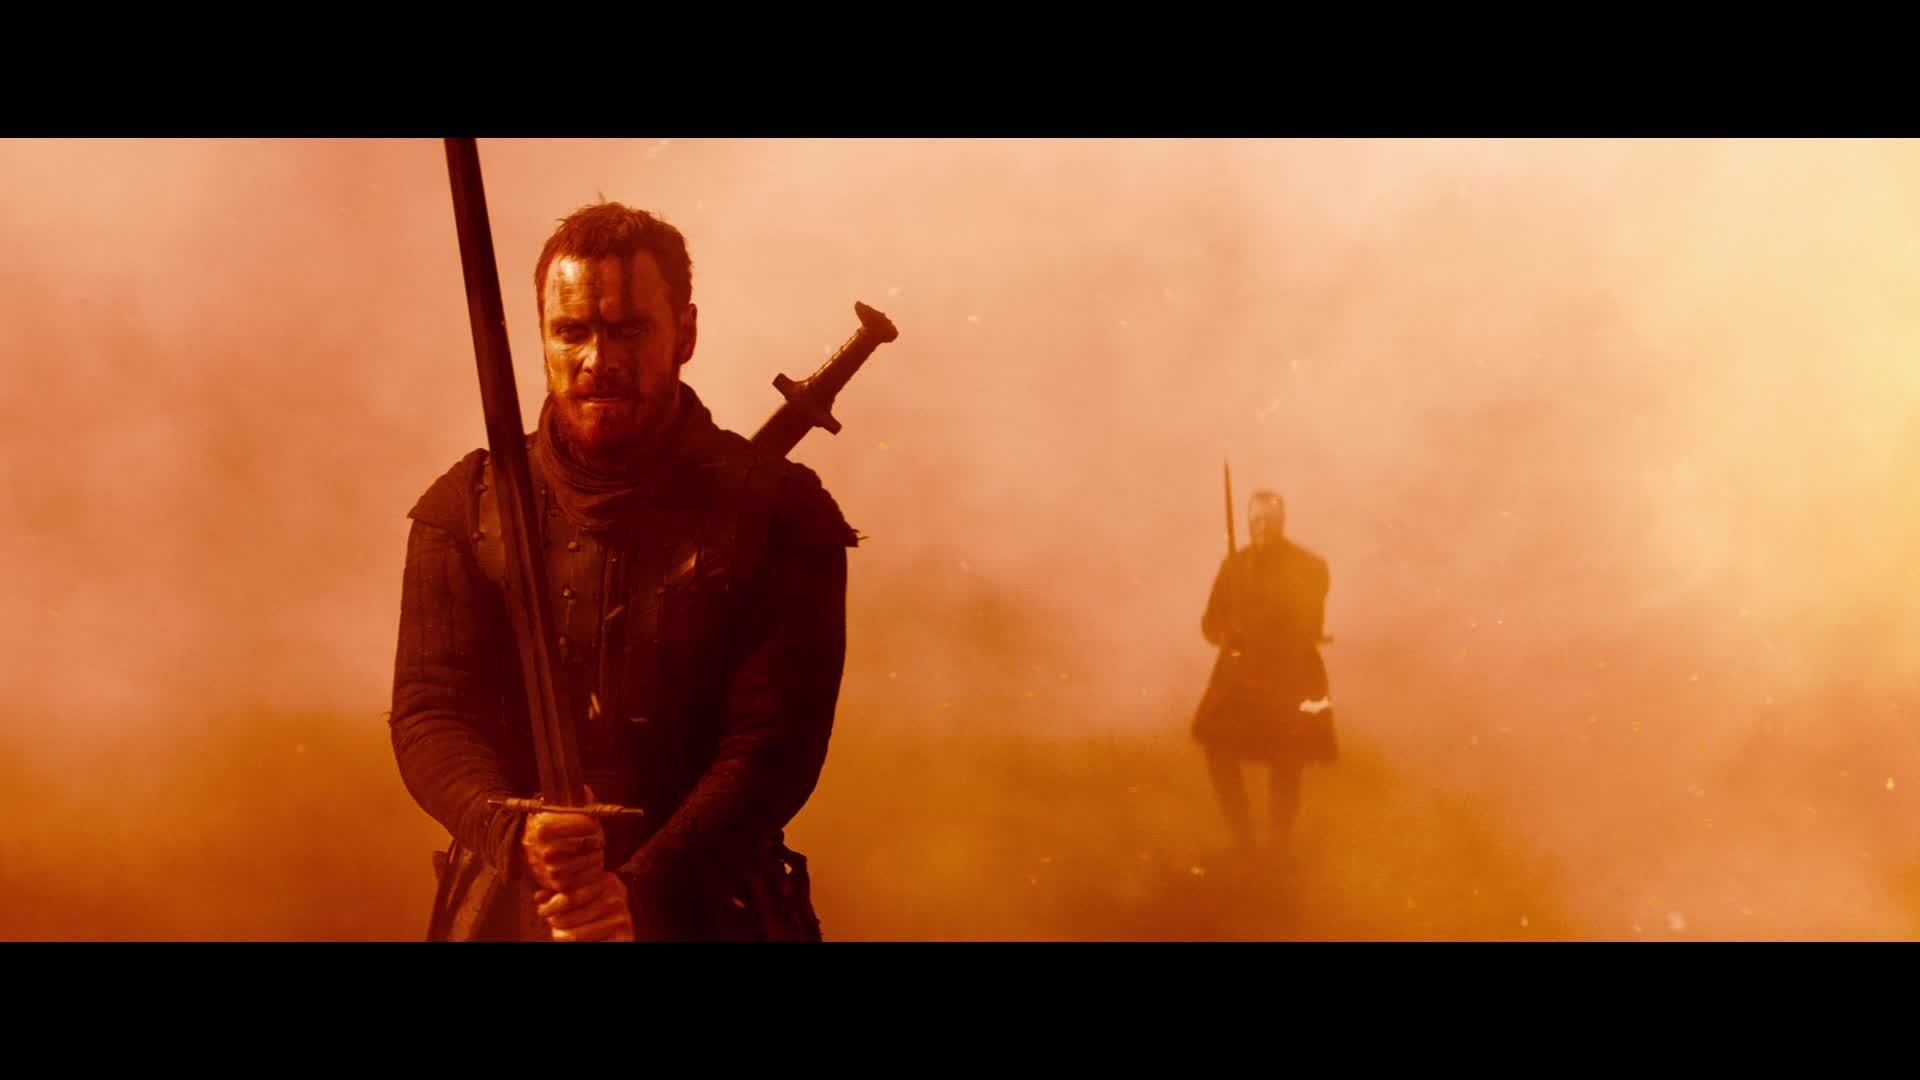 the judgement day came for macbeth unexpectedly The day of judgment will be the great day not only will it come unexpectedly, but its awards will fill both saints and sinners with astonishment.